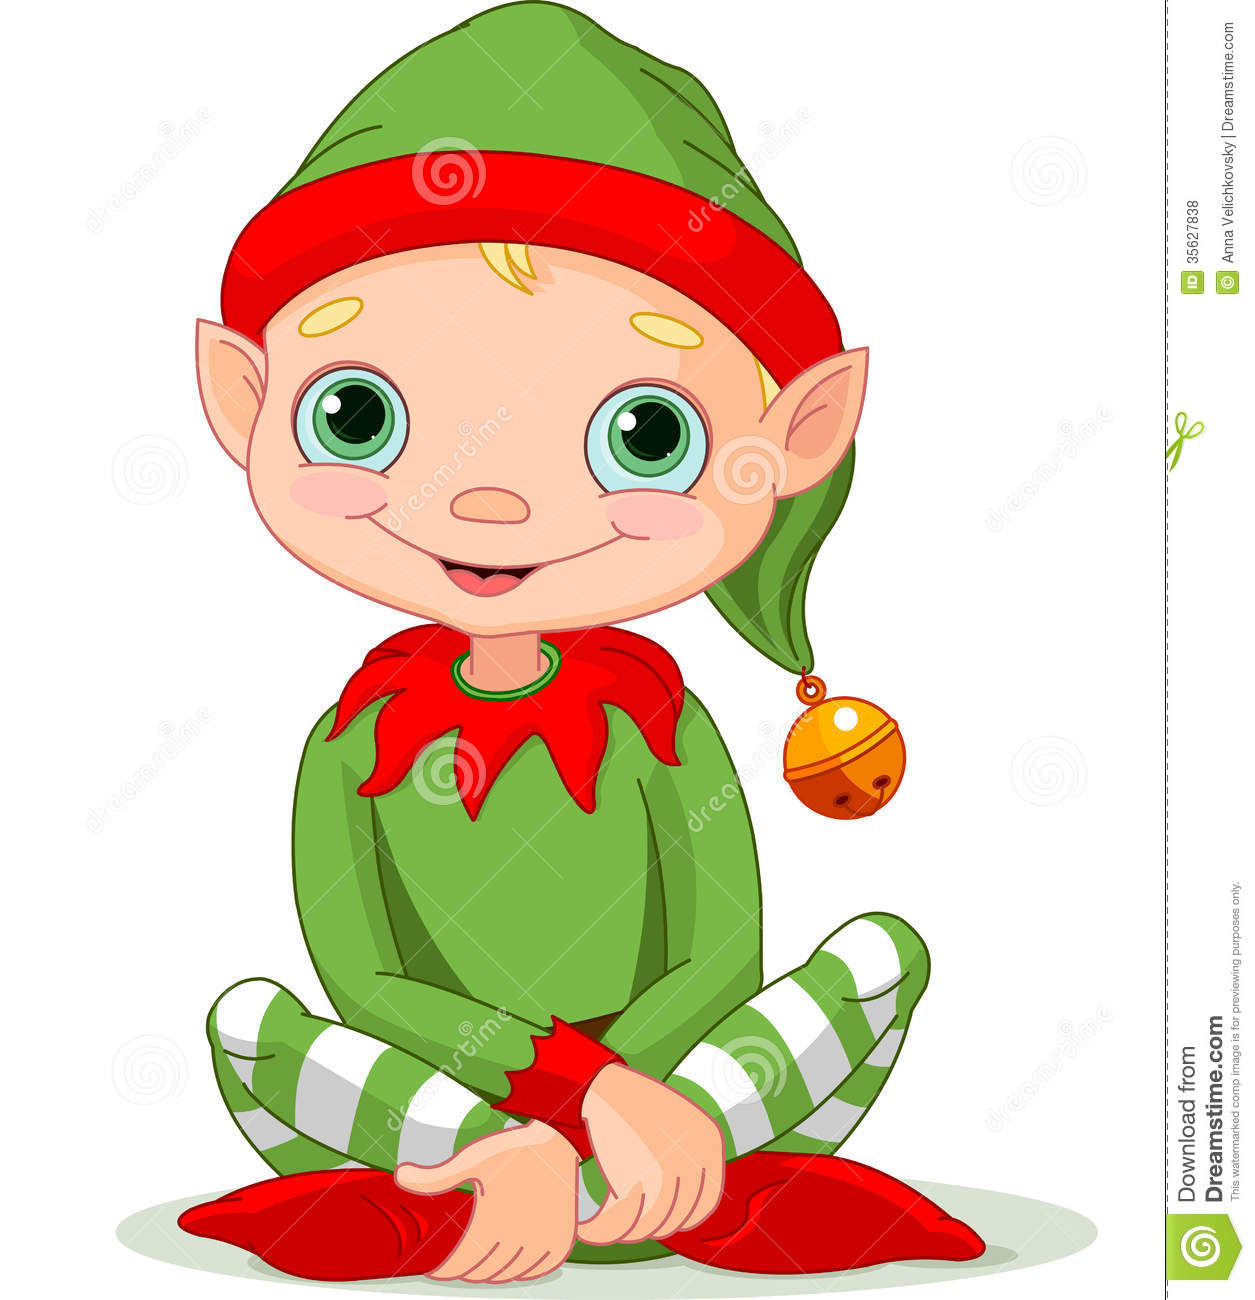 Christmas Elf Royalty Free Stock Photos - Image: 35627838